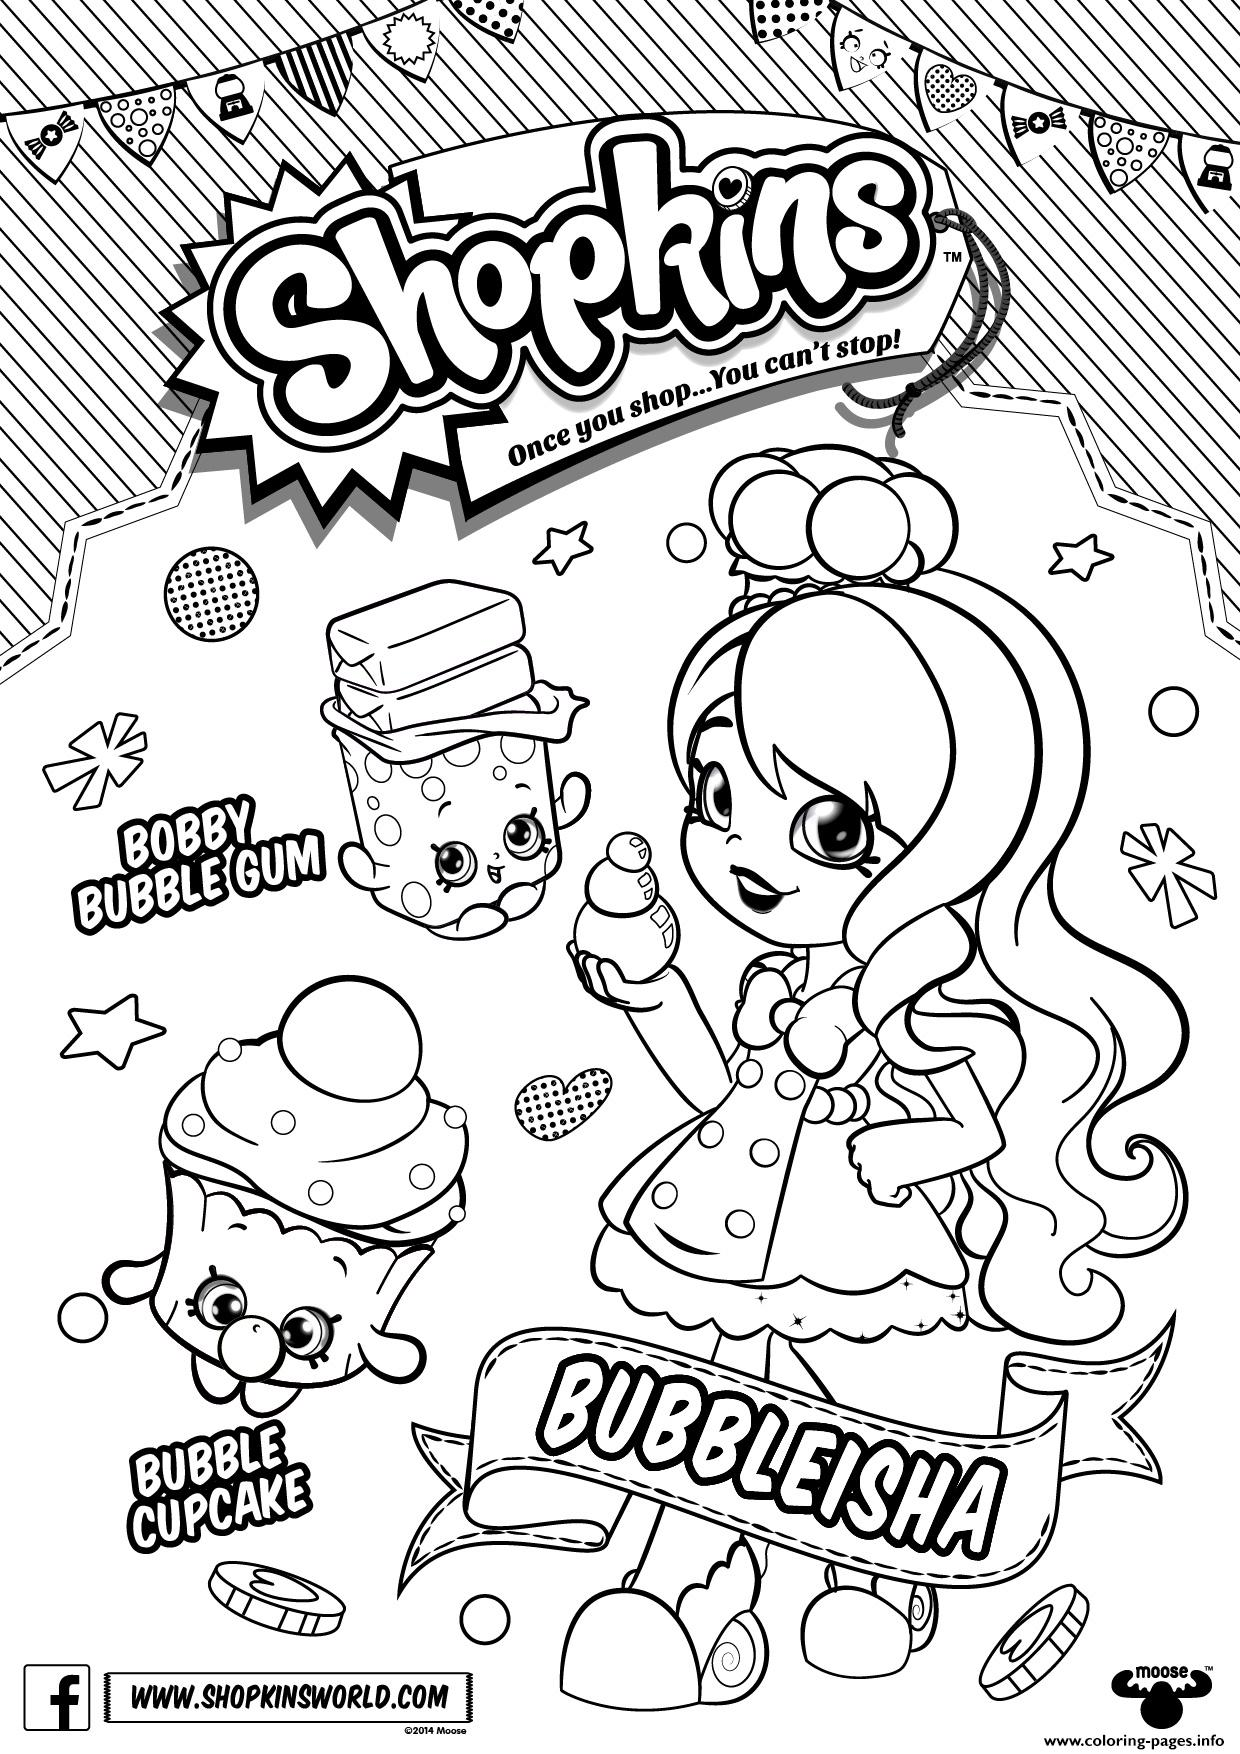 Bubbleisha Shopkins Shoppies With